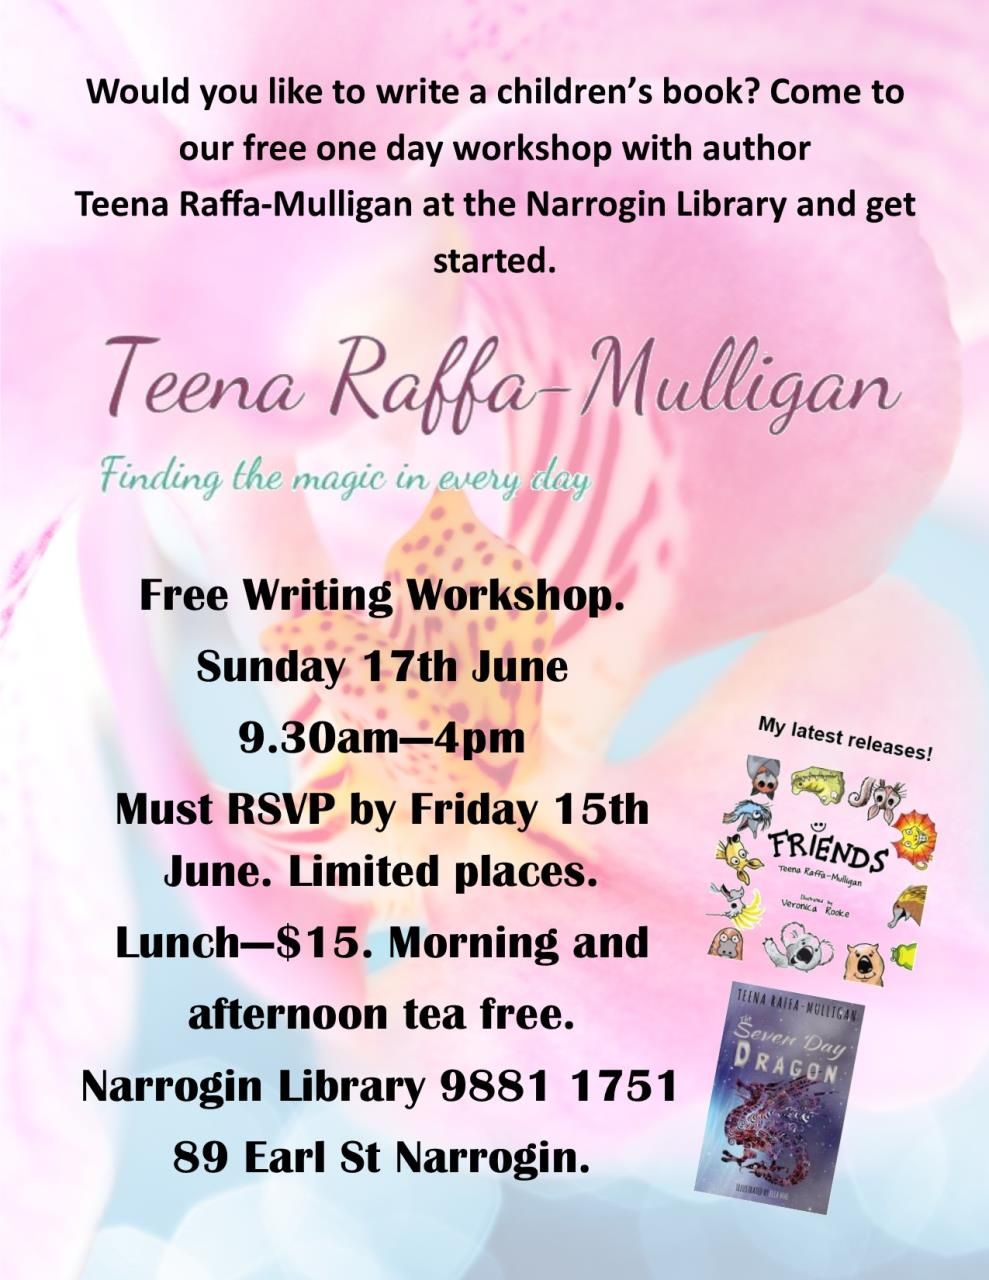 Free Writing for Children Workshop Teena Raffa-Mulligan